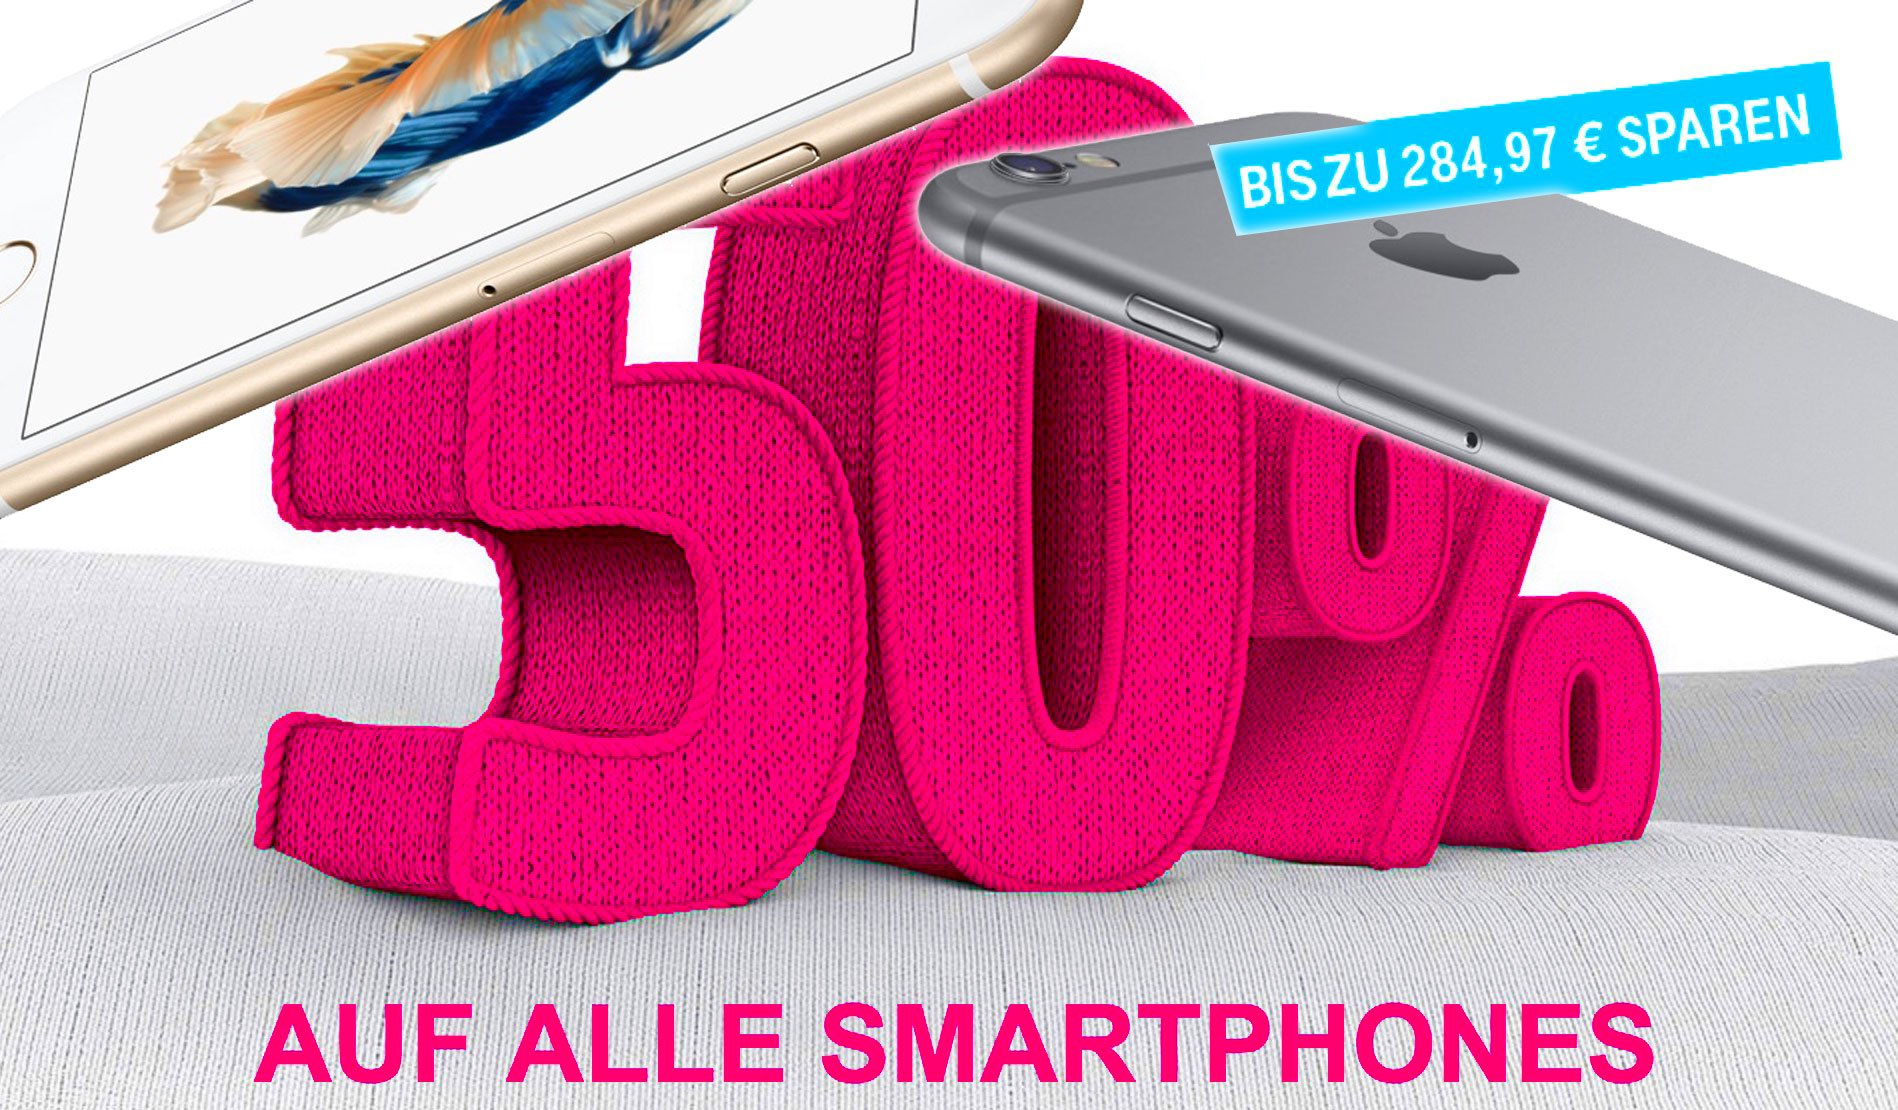 iPhone 6s Telekom Aktion: alle Smartphones (auch iPhone) 50% billiger 6